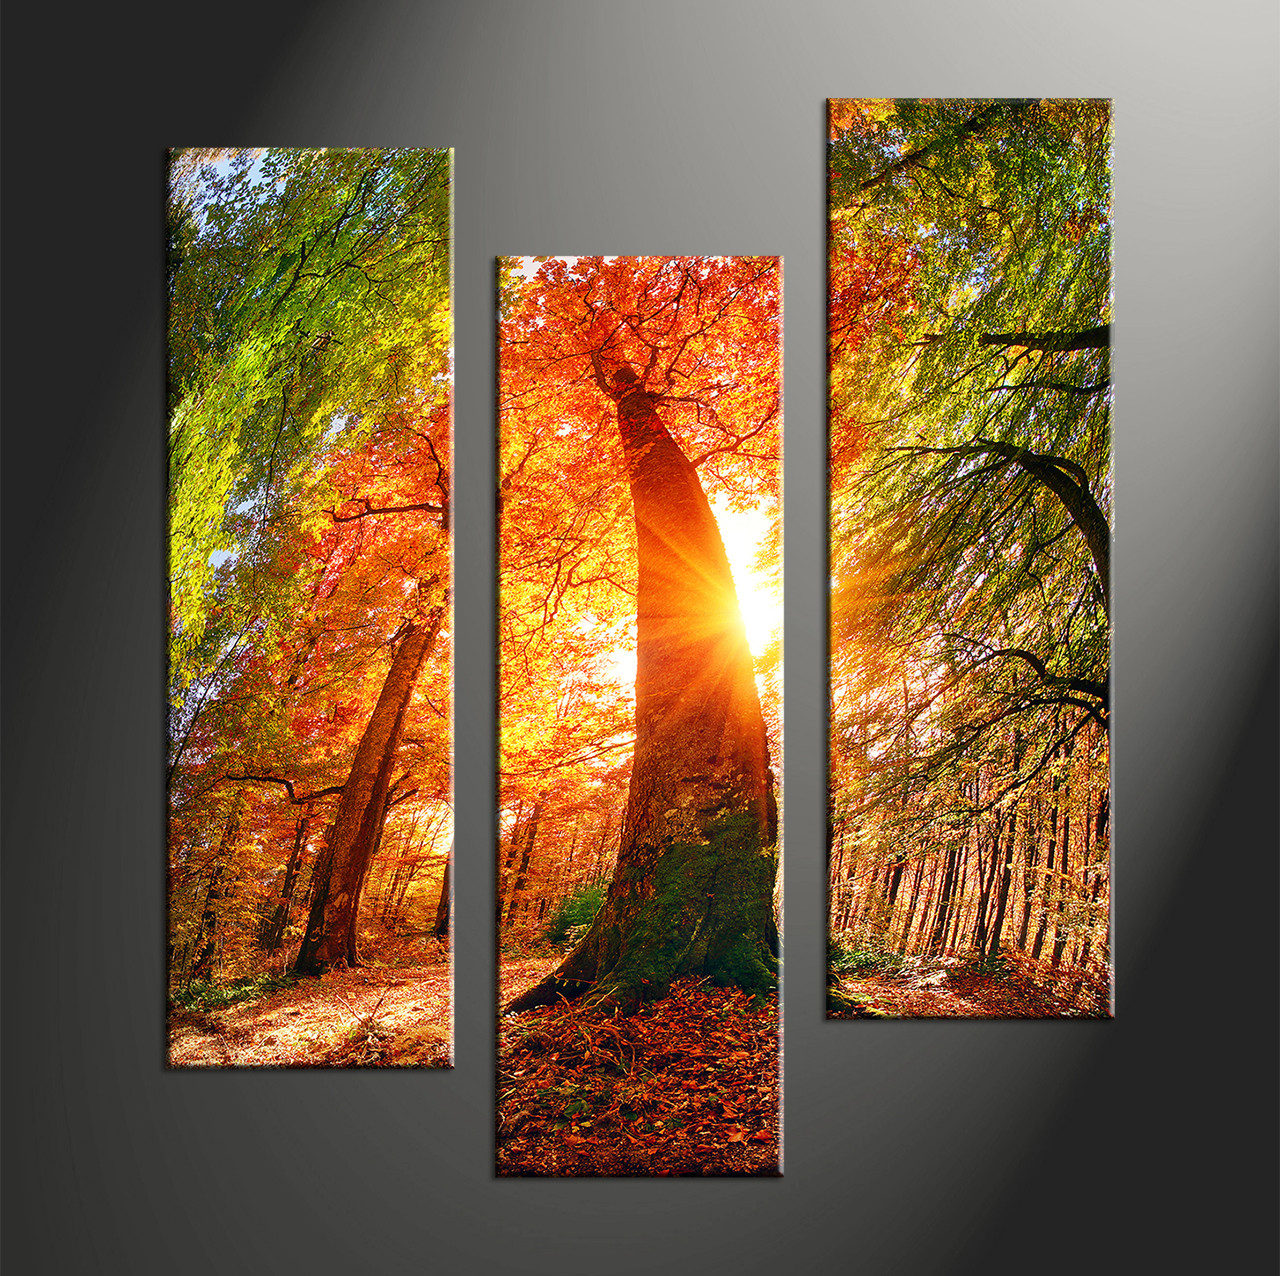 home decor 3 piece canvas art prints nature artwork scenery large canvas  sc 1 st  VVV ART & Triptych Red Scenery Sunrise Multi Panel Canvas